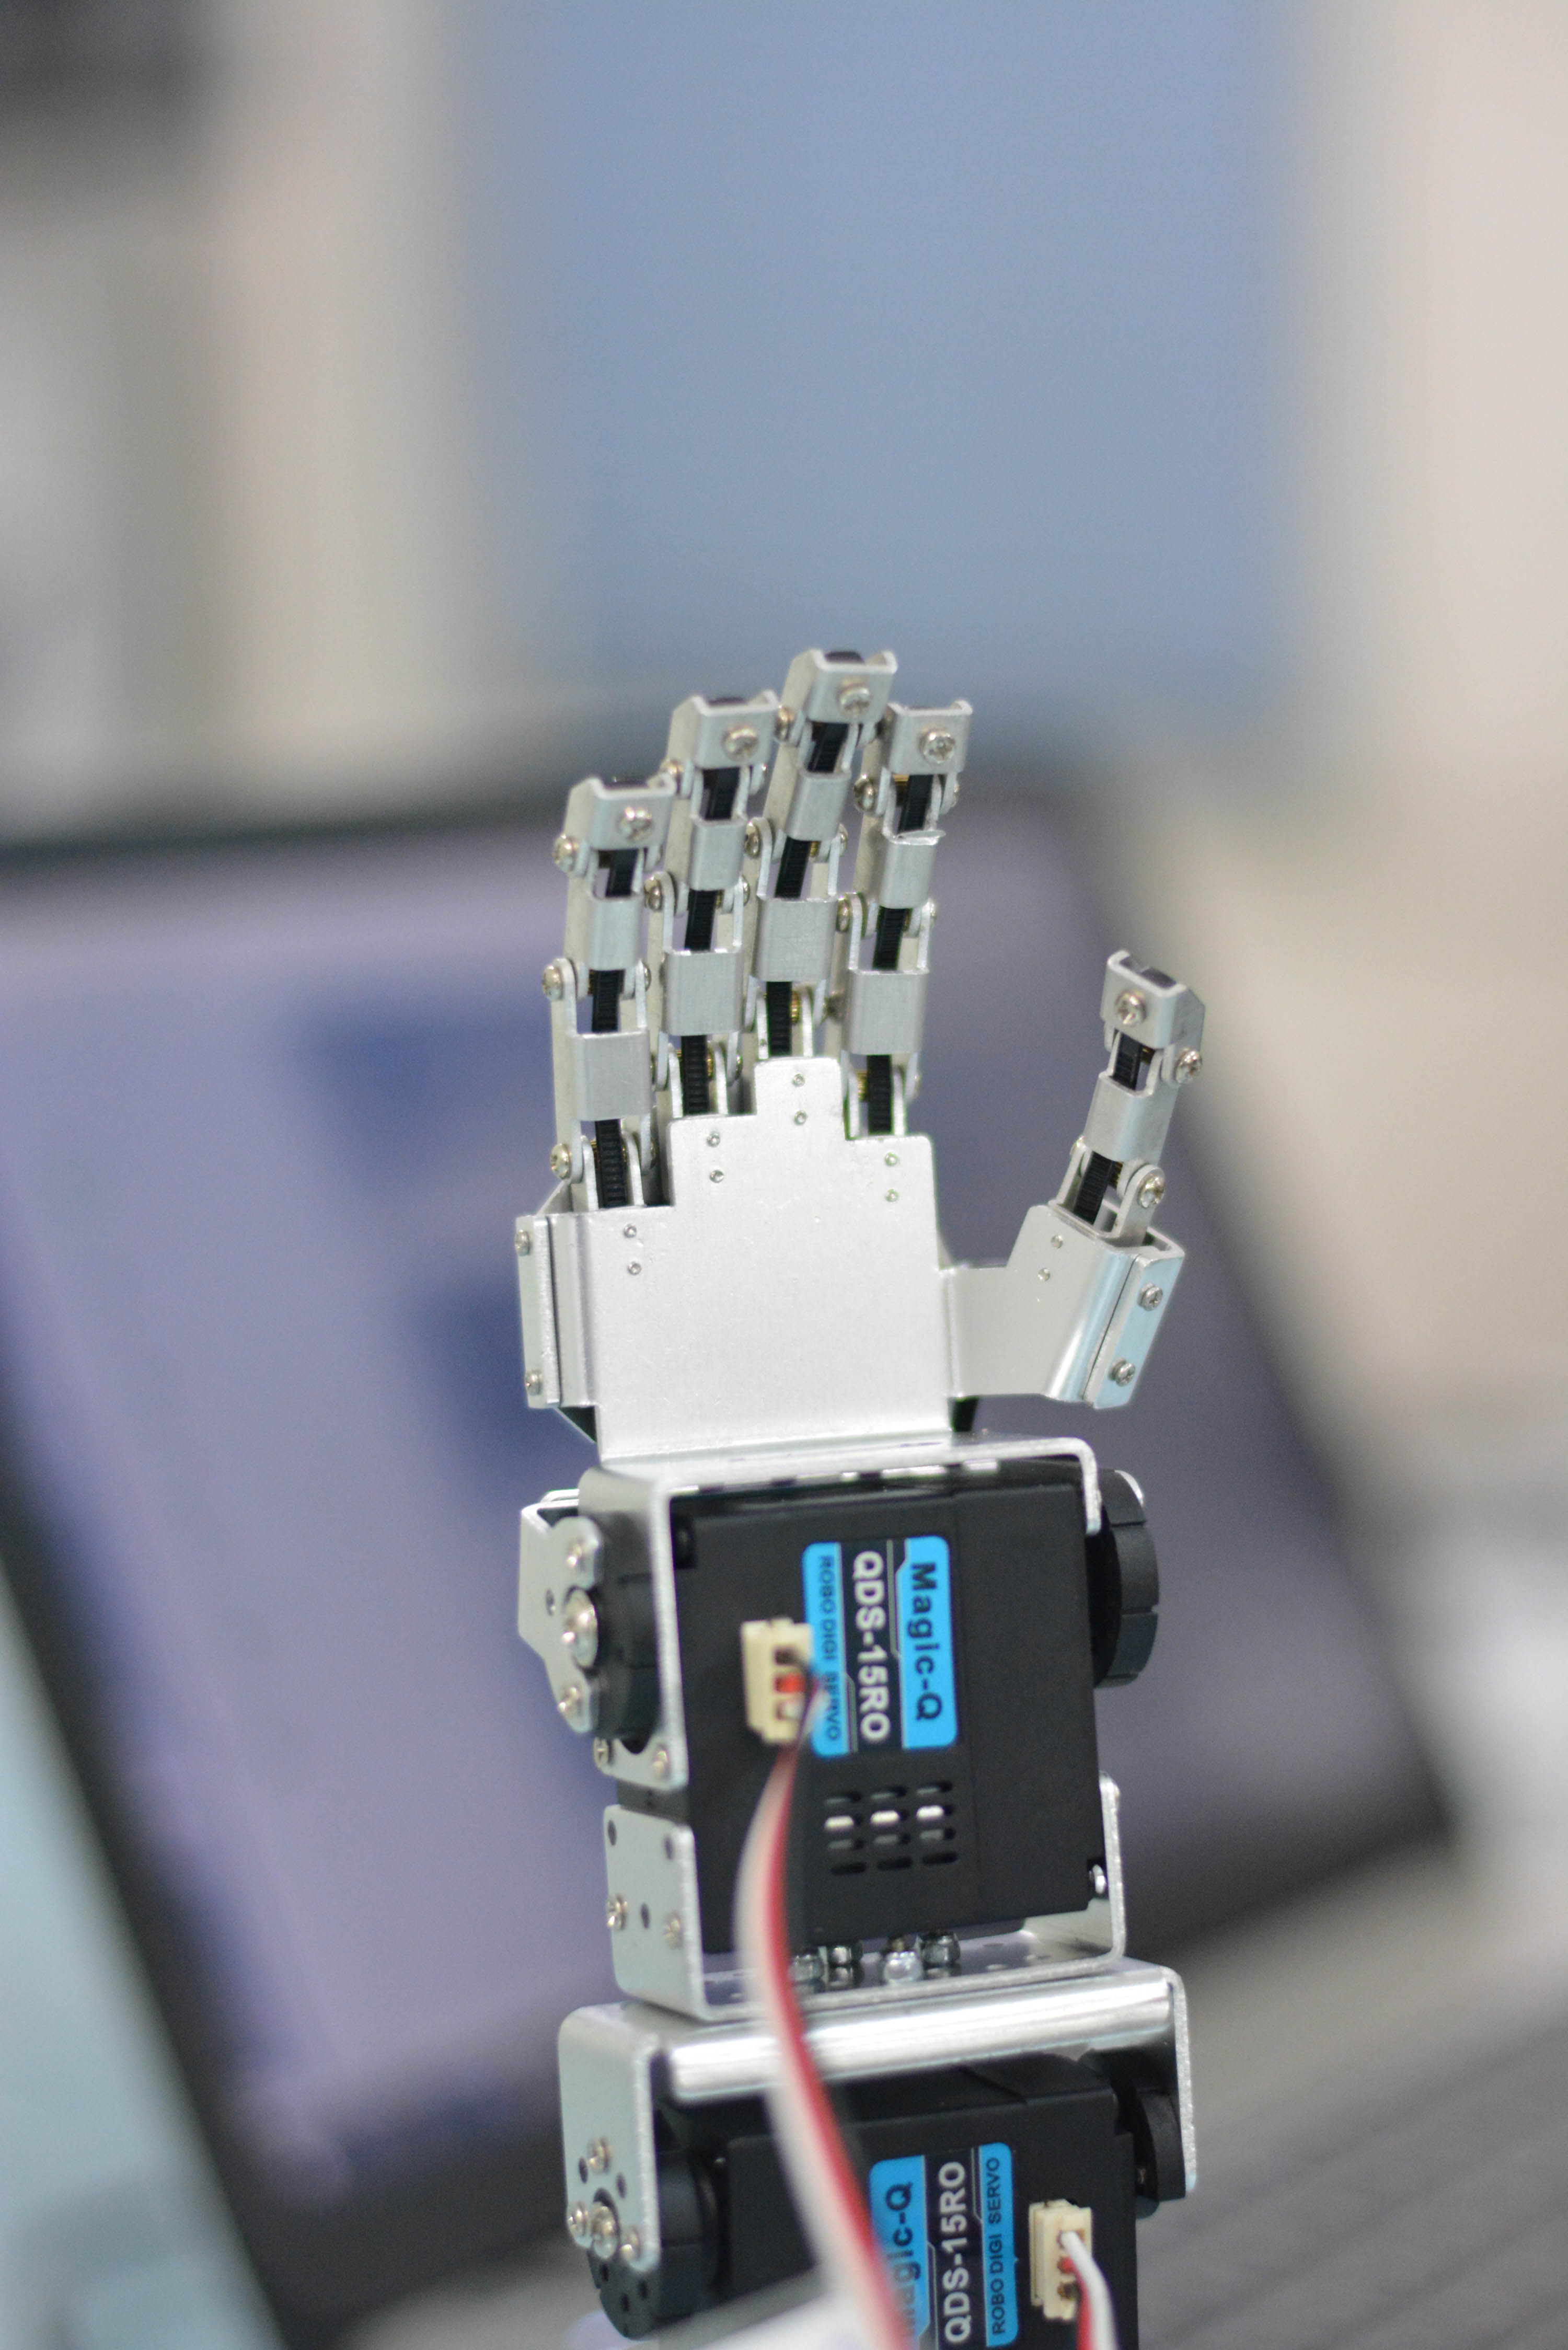 EMG controlled Humanoid Robotic Arm for Amputees - The IEEE